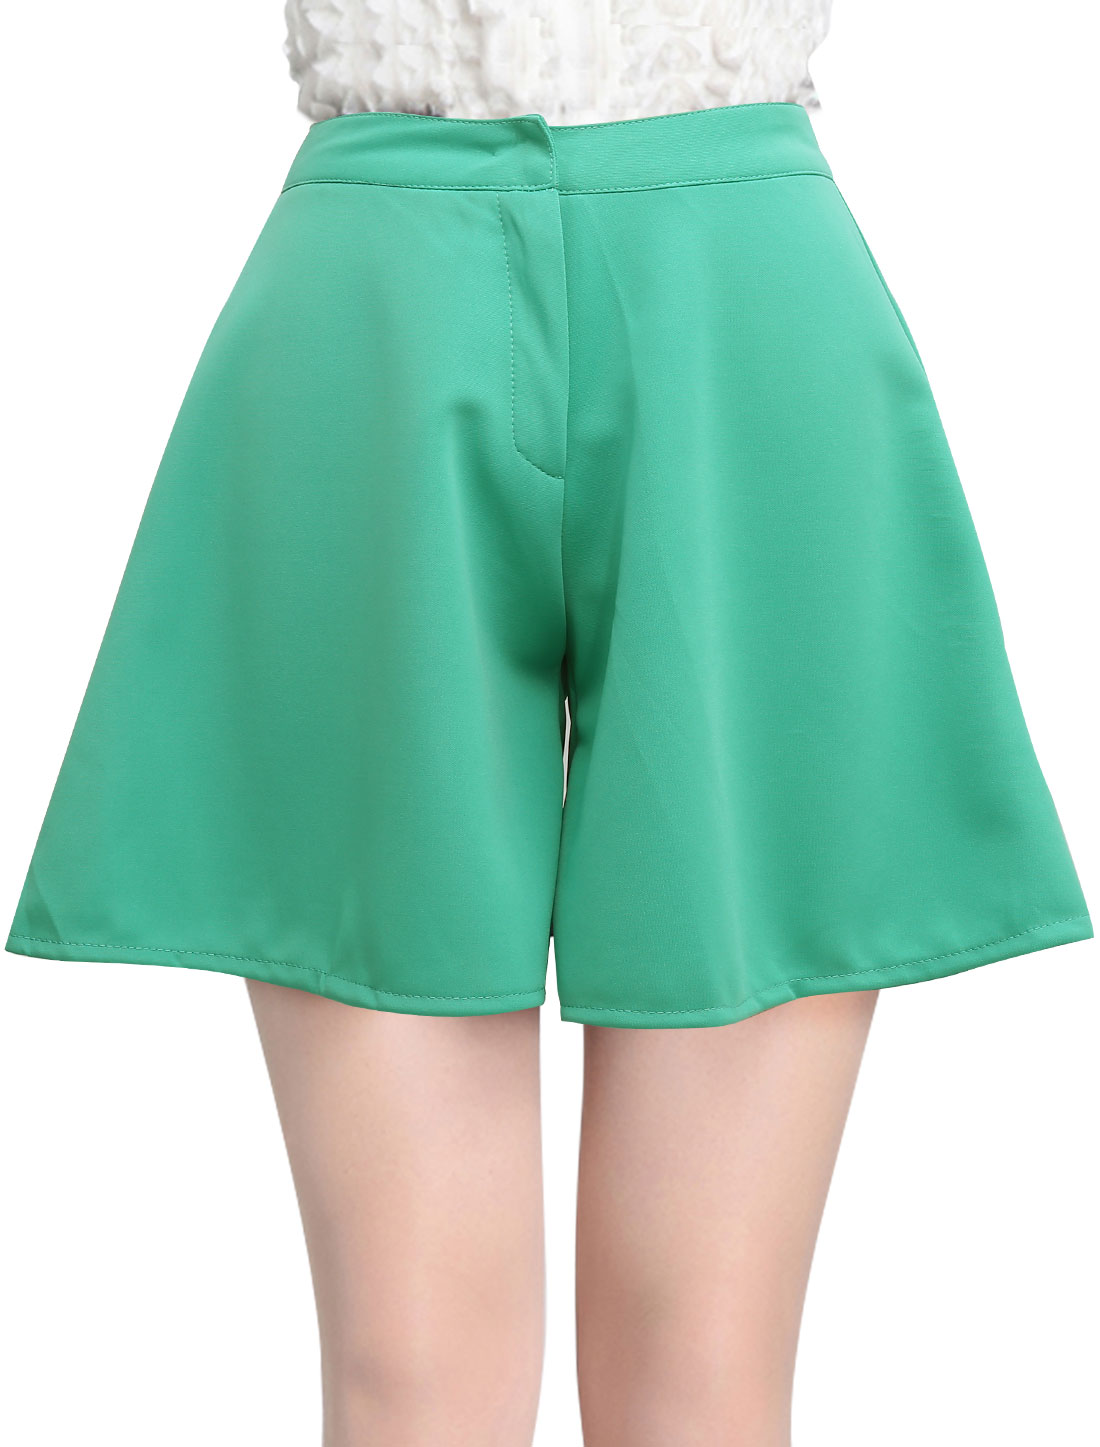 Lady Simple High Waist Zip Front Loose Fit Shorts Sea Green S